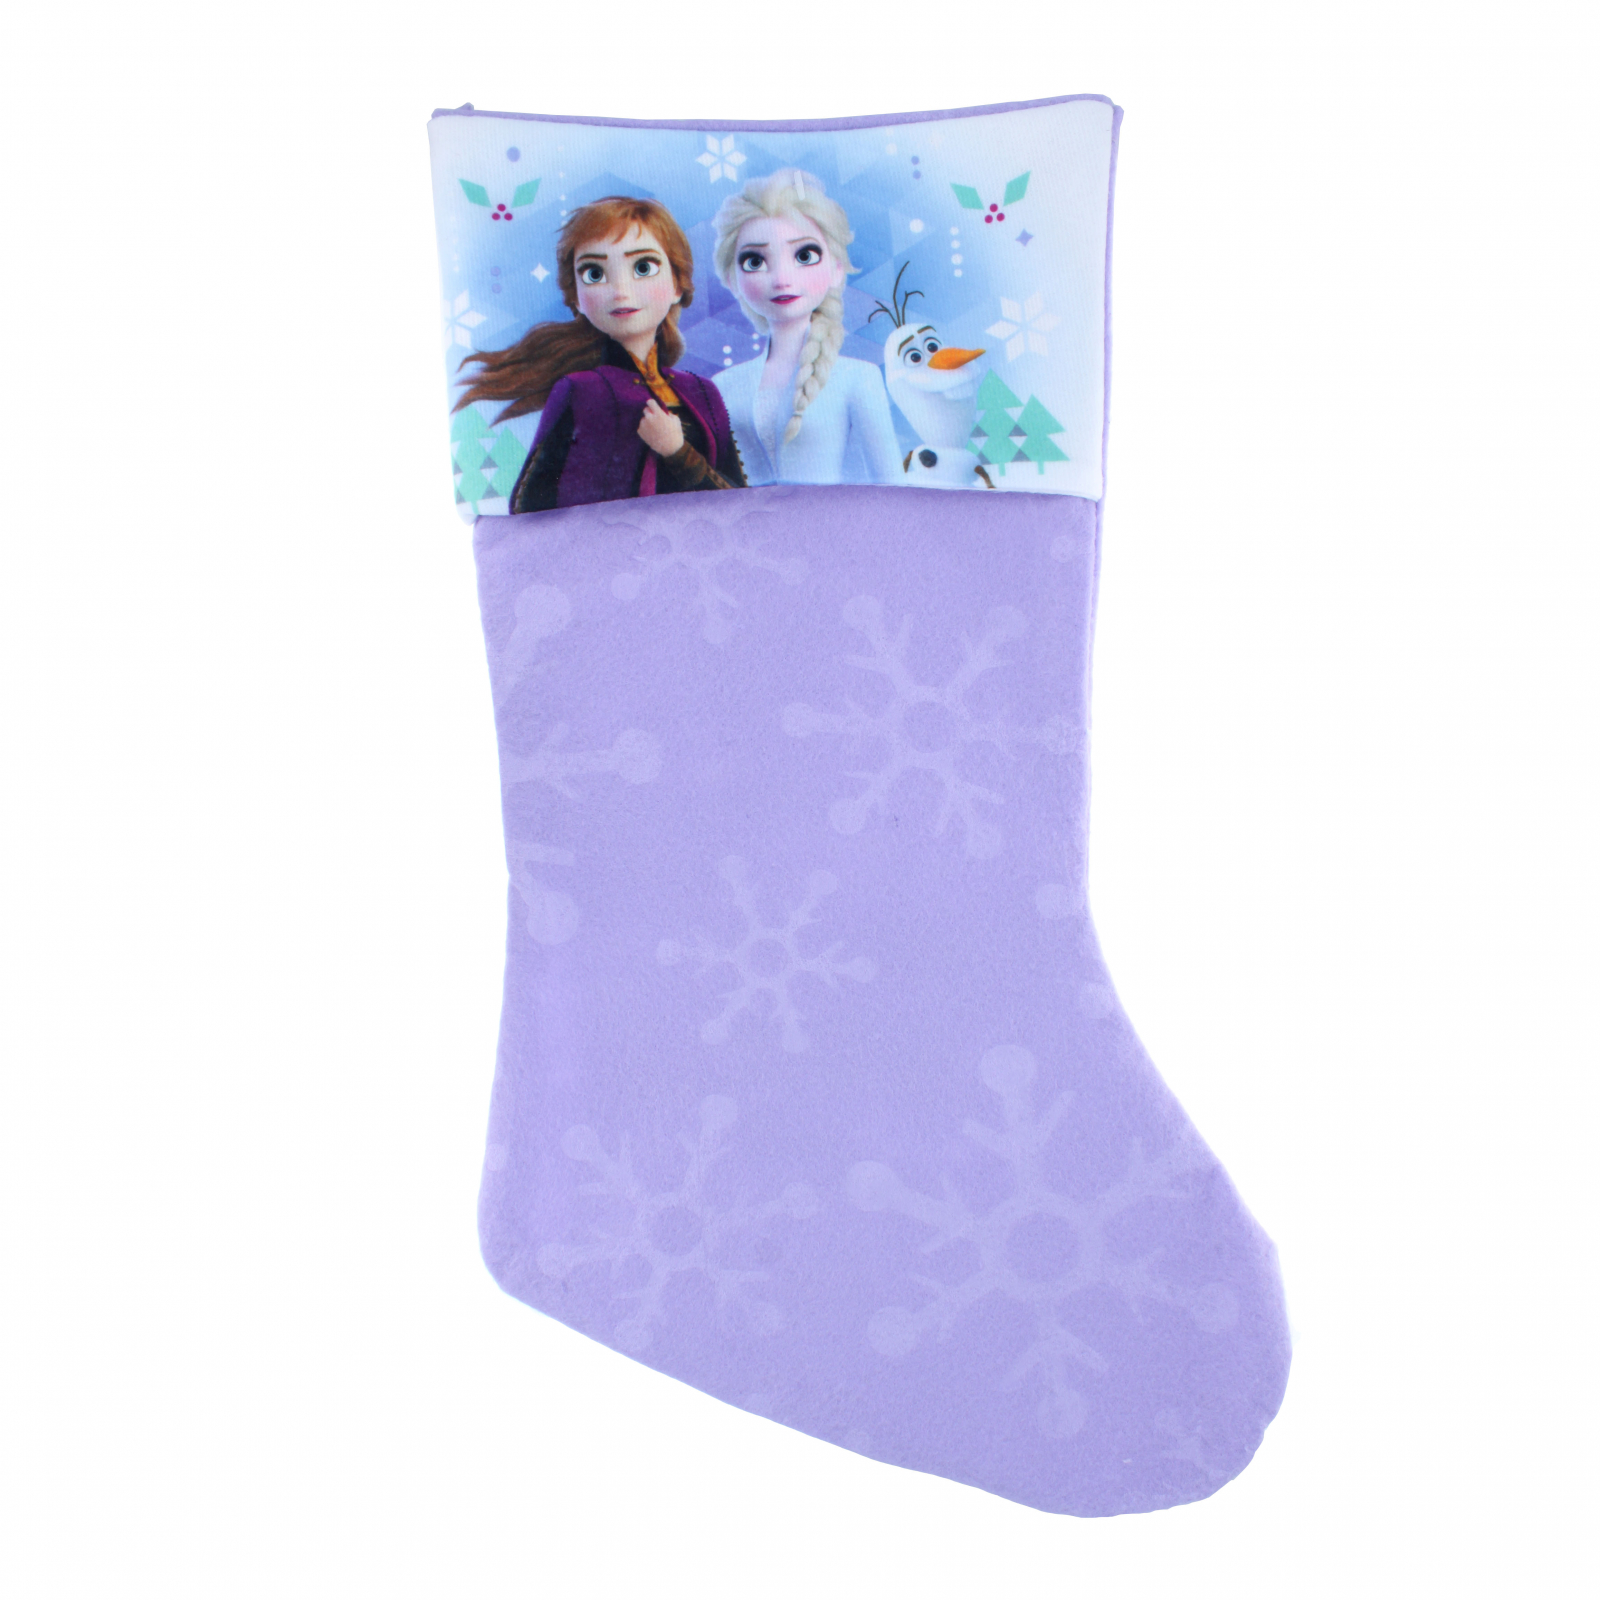 Disney Frozen 2 Girls Christmas Stocking Home Decor 15.5 In